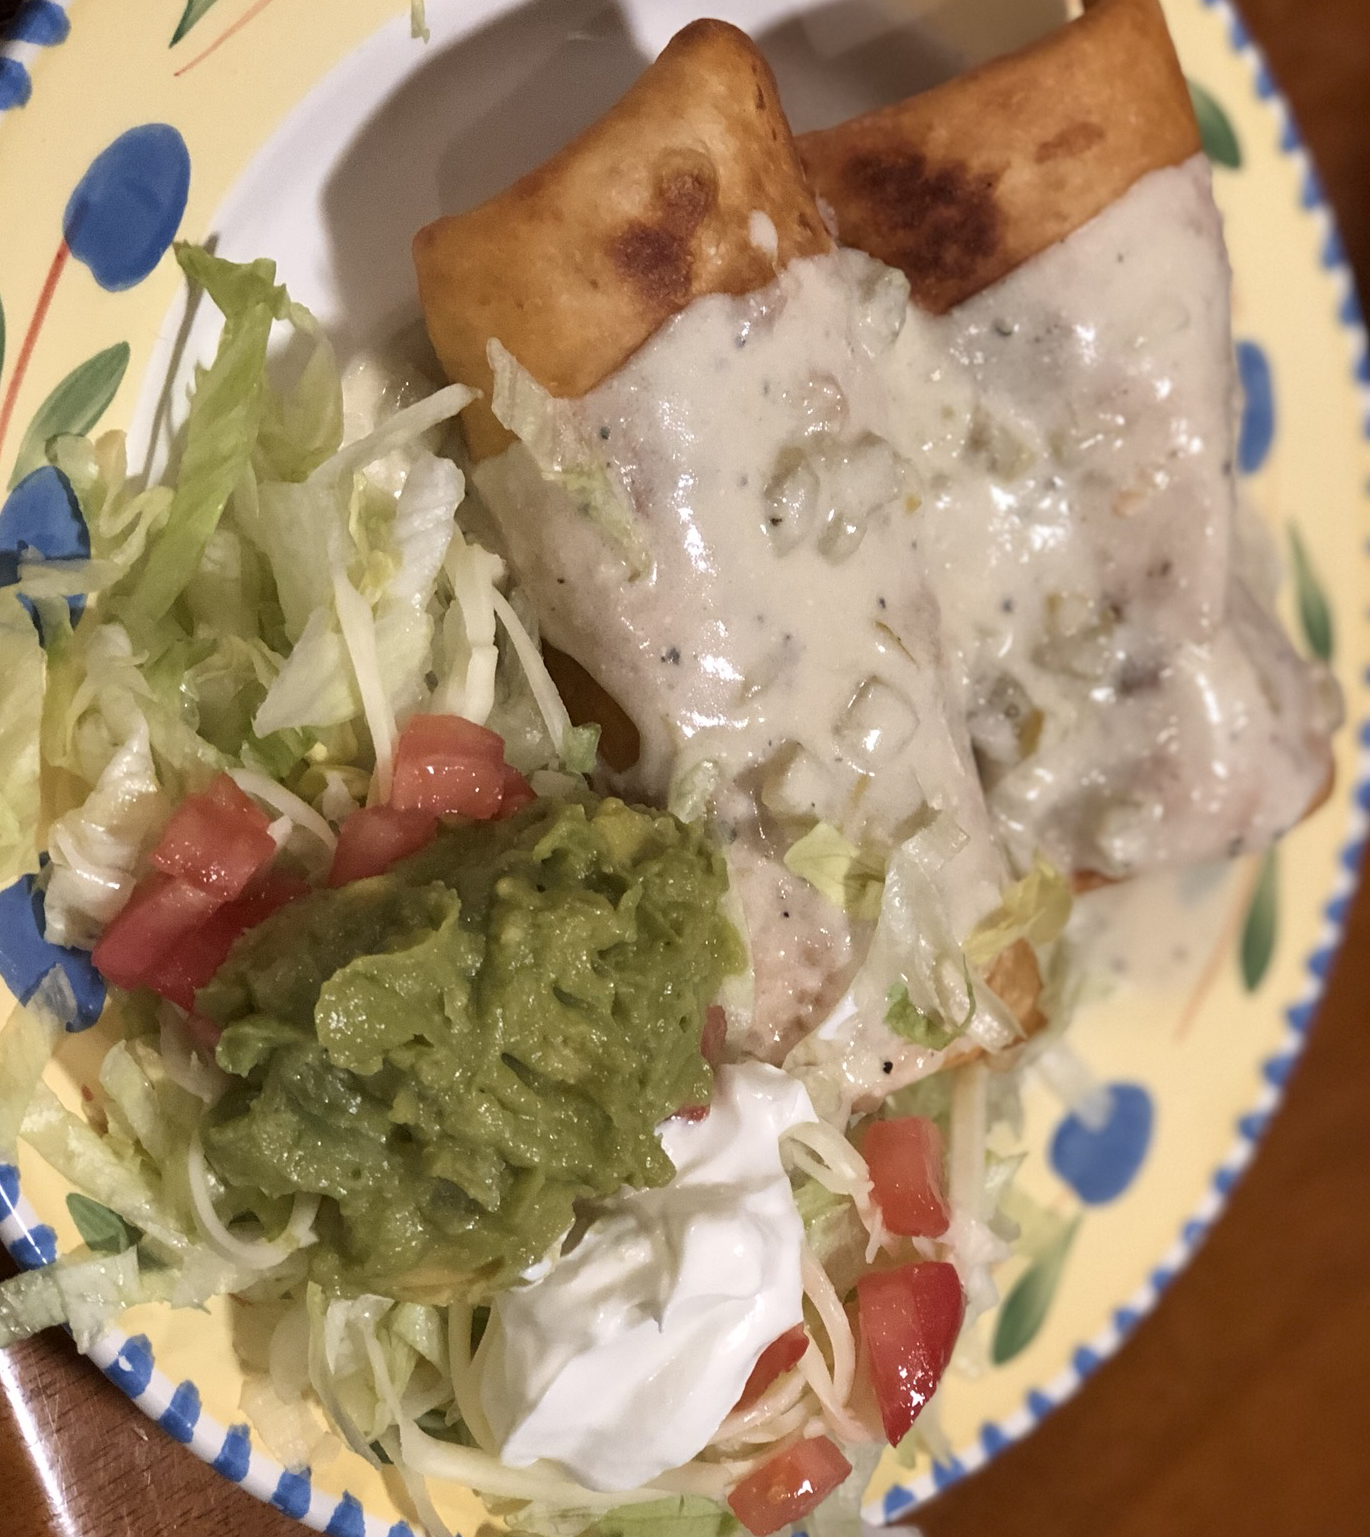 Chicken Chimichangas with Sour Cream Sauce TwoLoveBirds